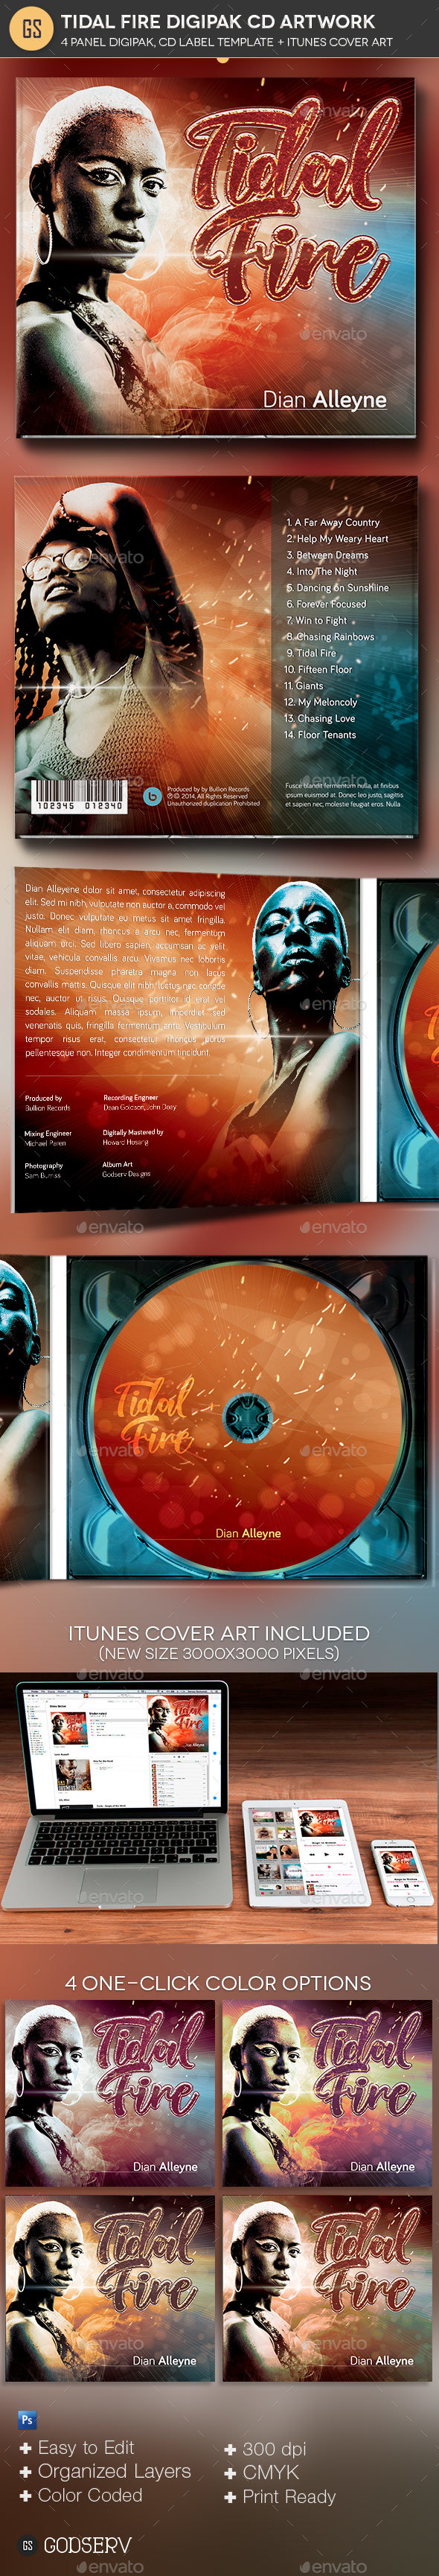 Tidal Fire 4 Panel Digipak CD Artwork Template - CD & DVD Artwork Print Templates